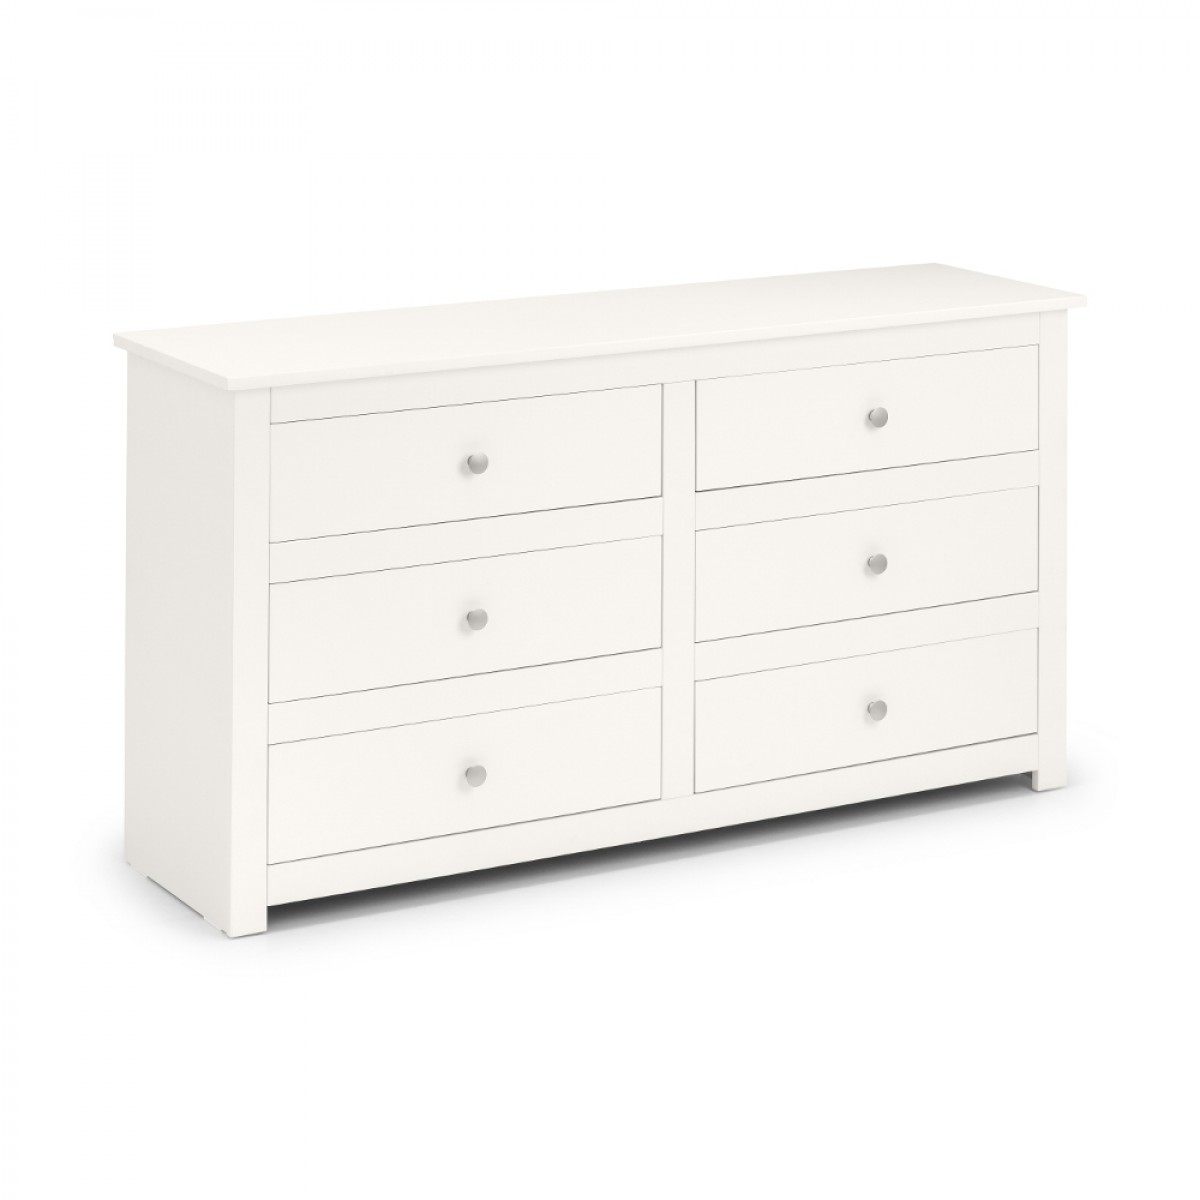 Radley White 6 Drawer Chest